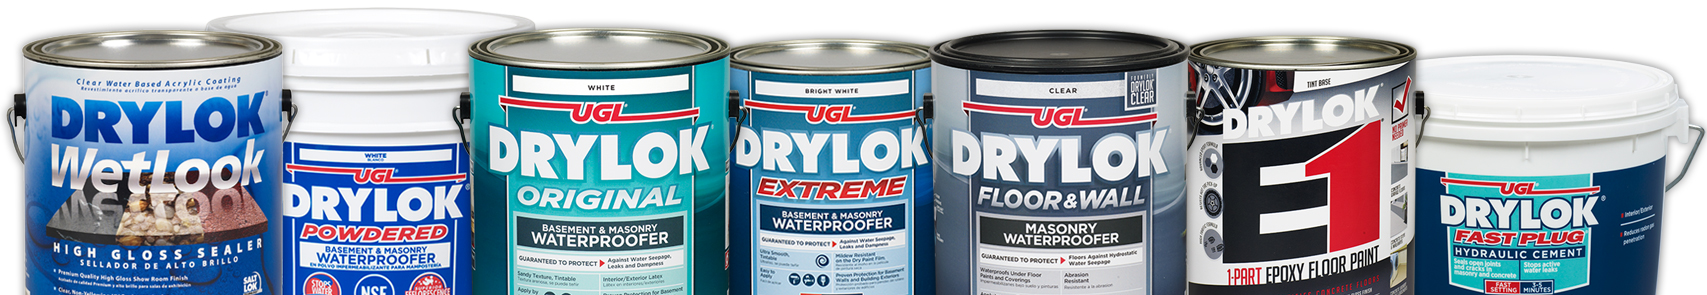 A collage of drylok products